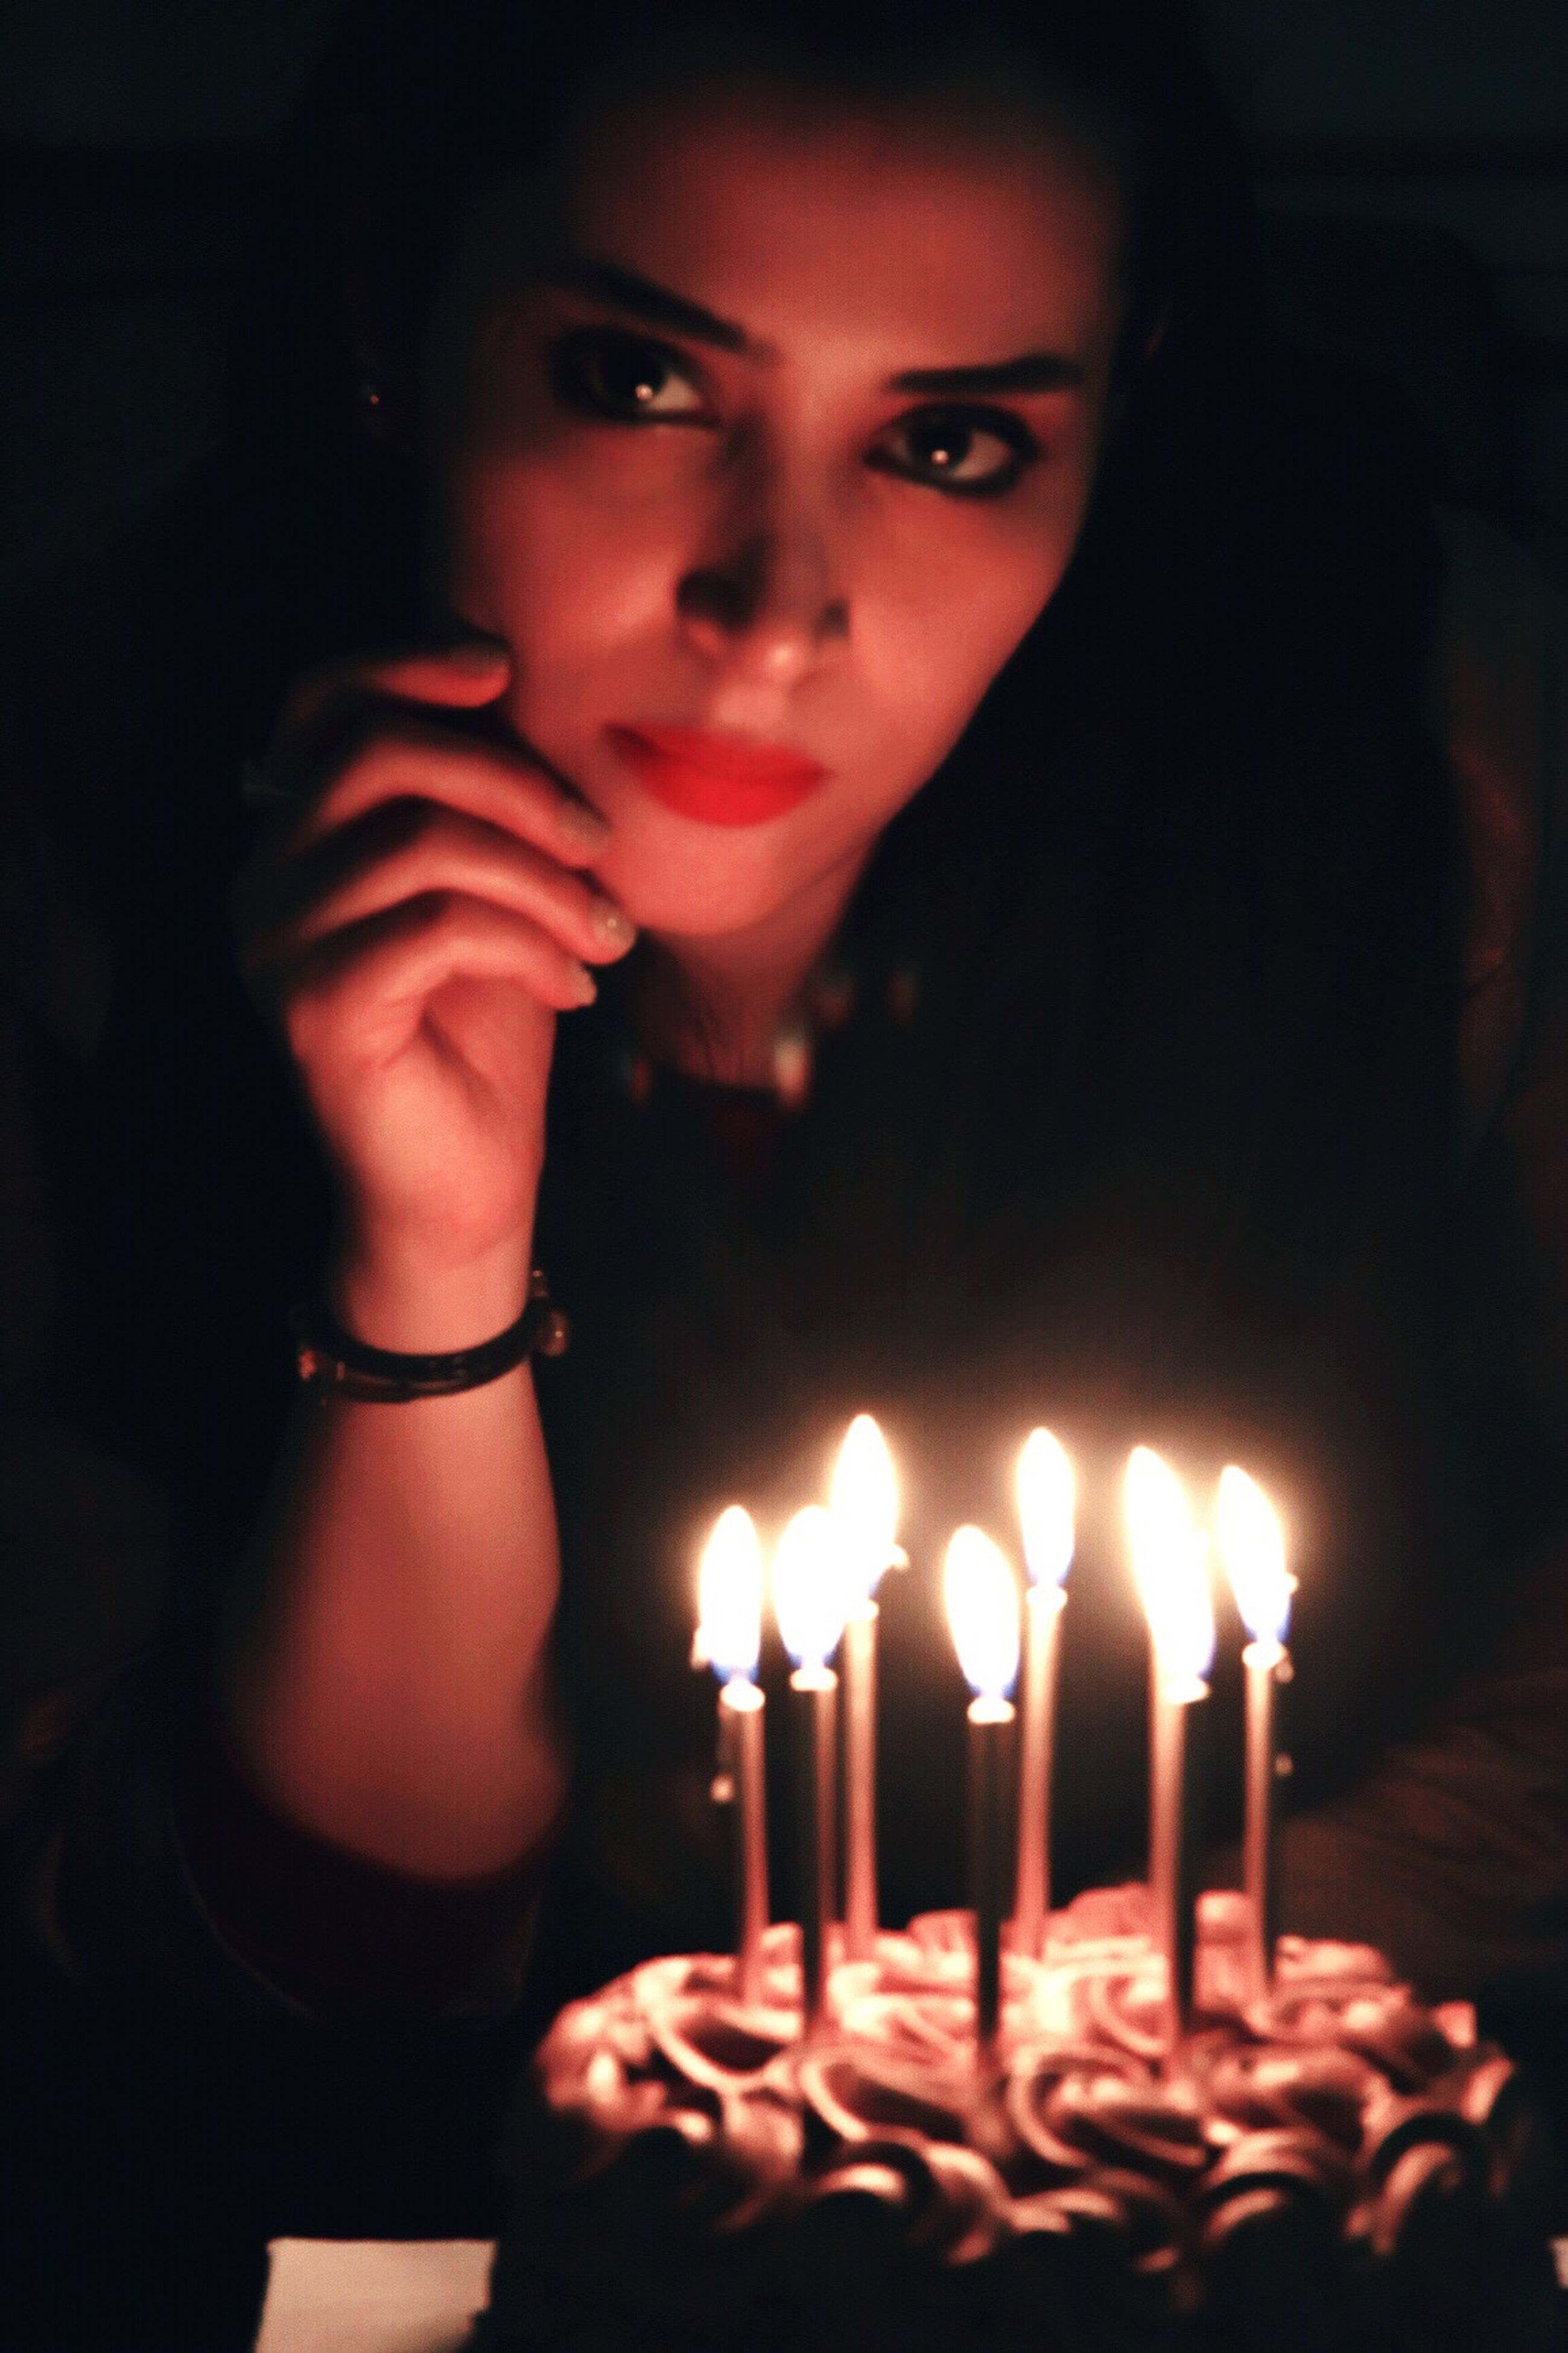 candle, flame, burning, one person, real people, indoors, front view, table, birthday cake, birthday candles, illuminated, celebration, igniting, women, beautiful woman, young women, close-up, young adult, people, adult, day